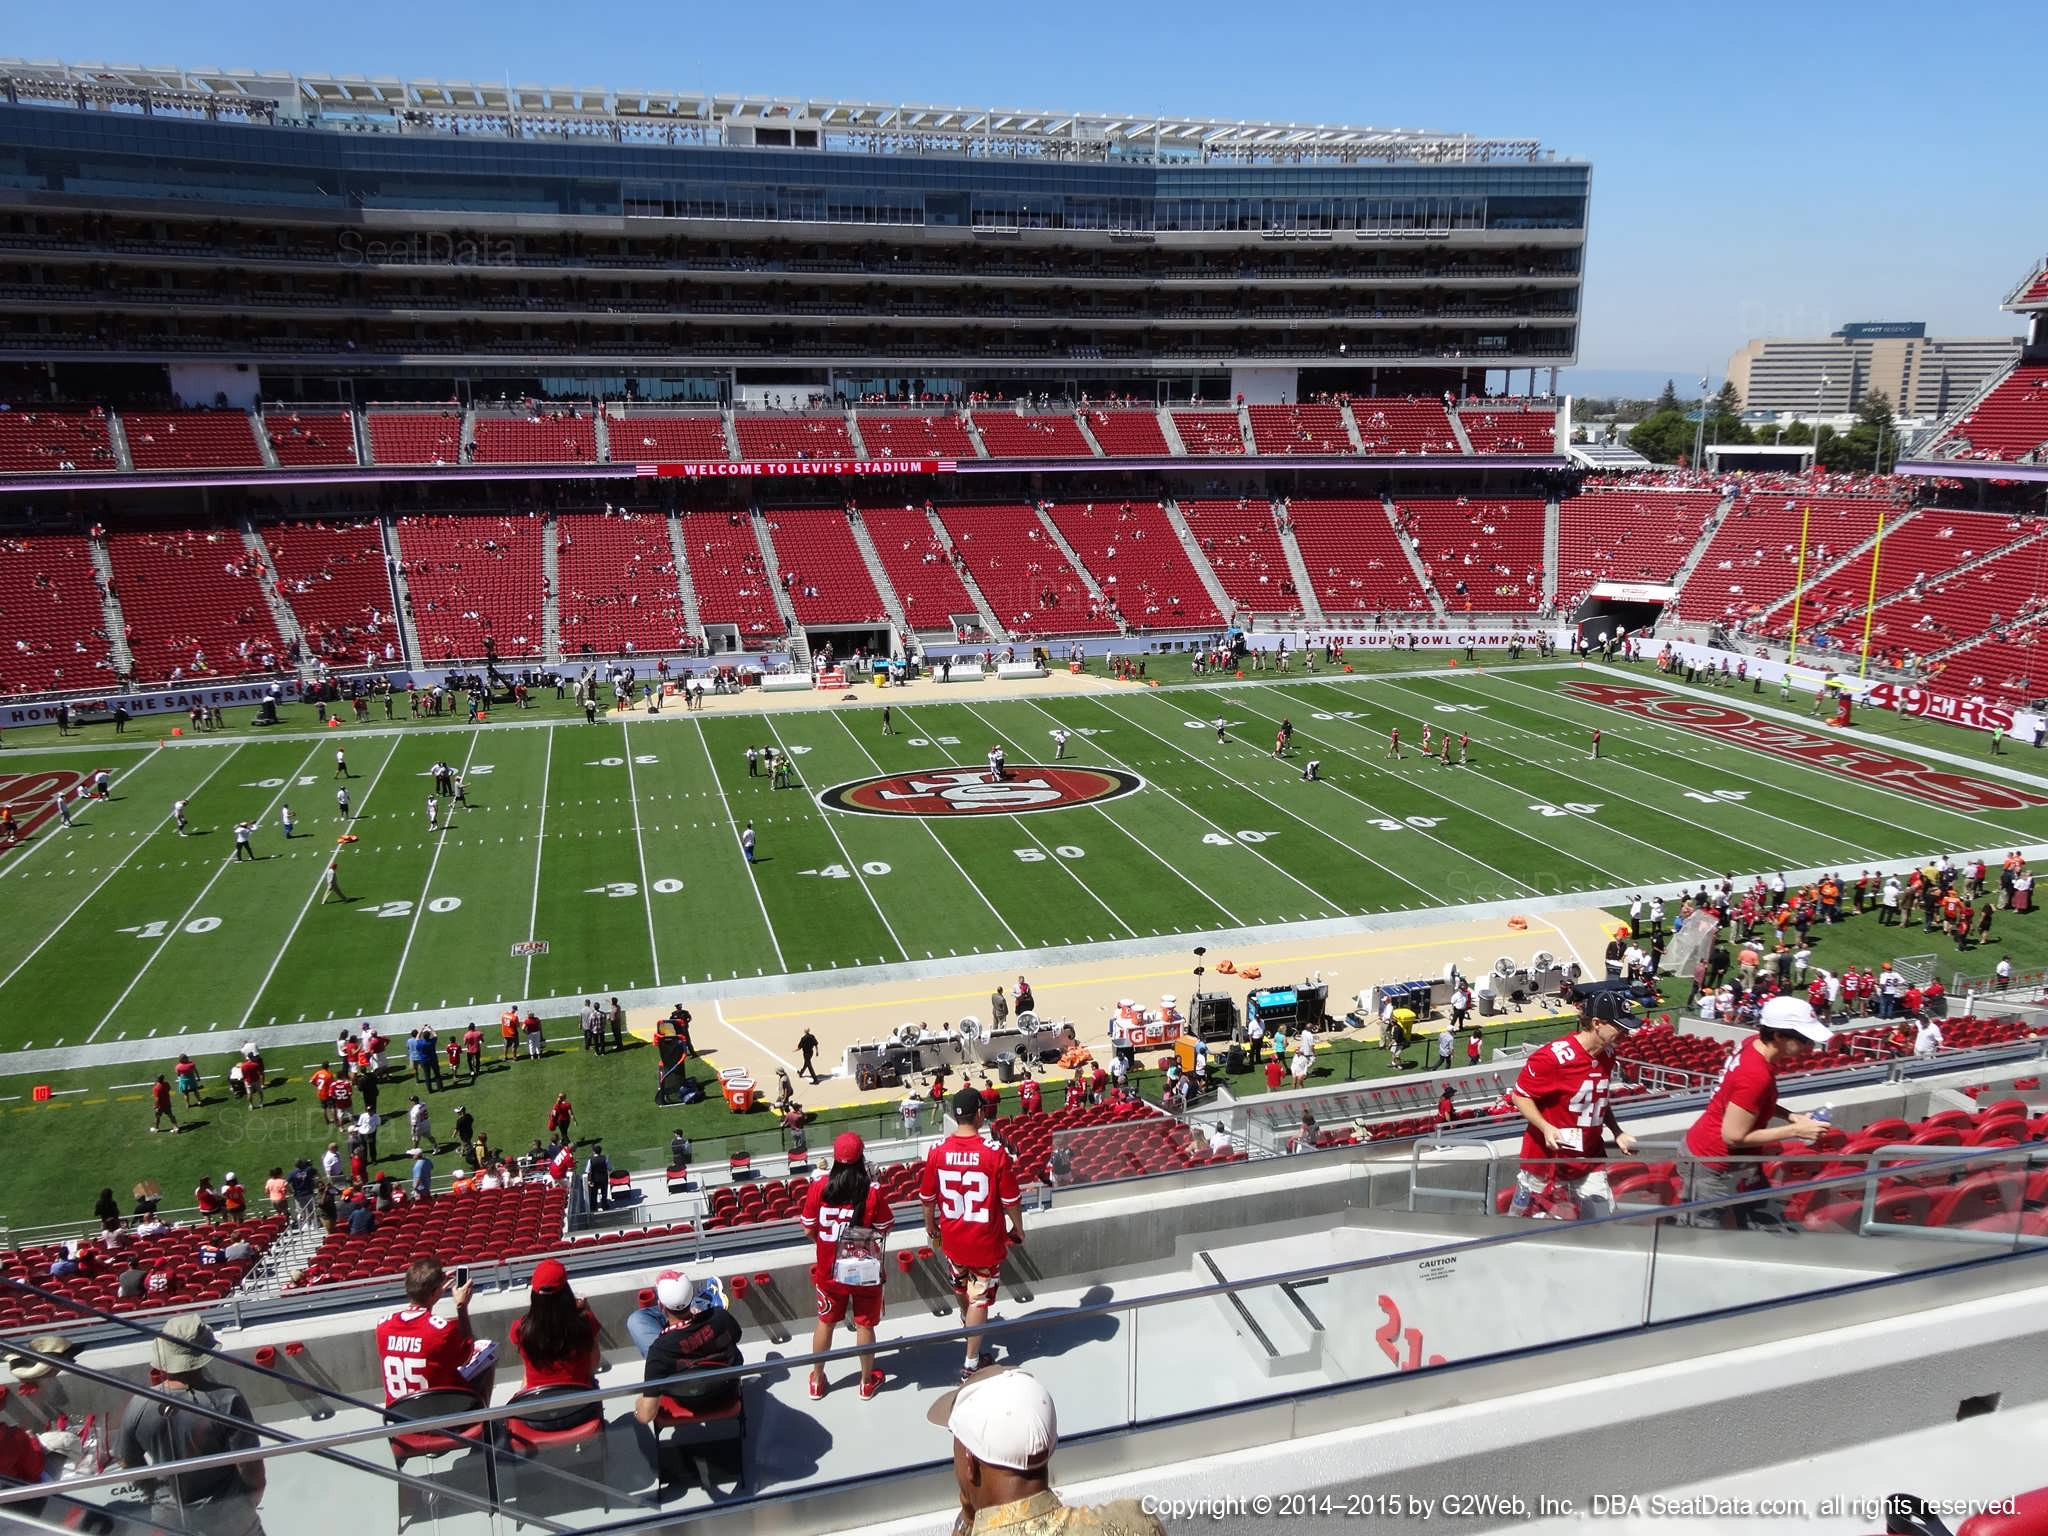 Seat view from section 218 at Levi's Stadium, home of the San Francisco 49ers